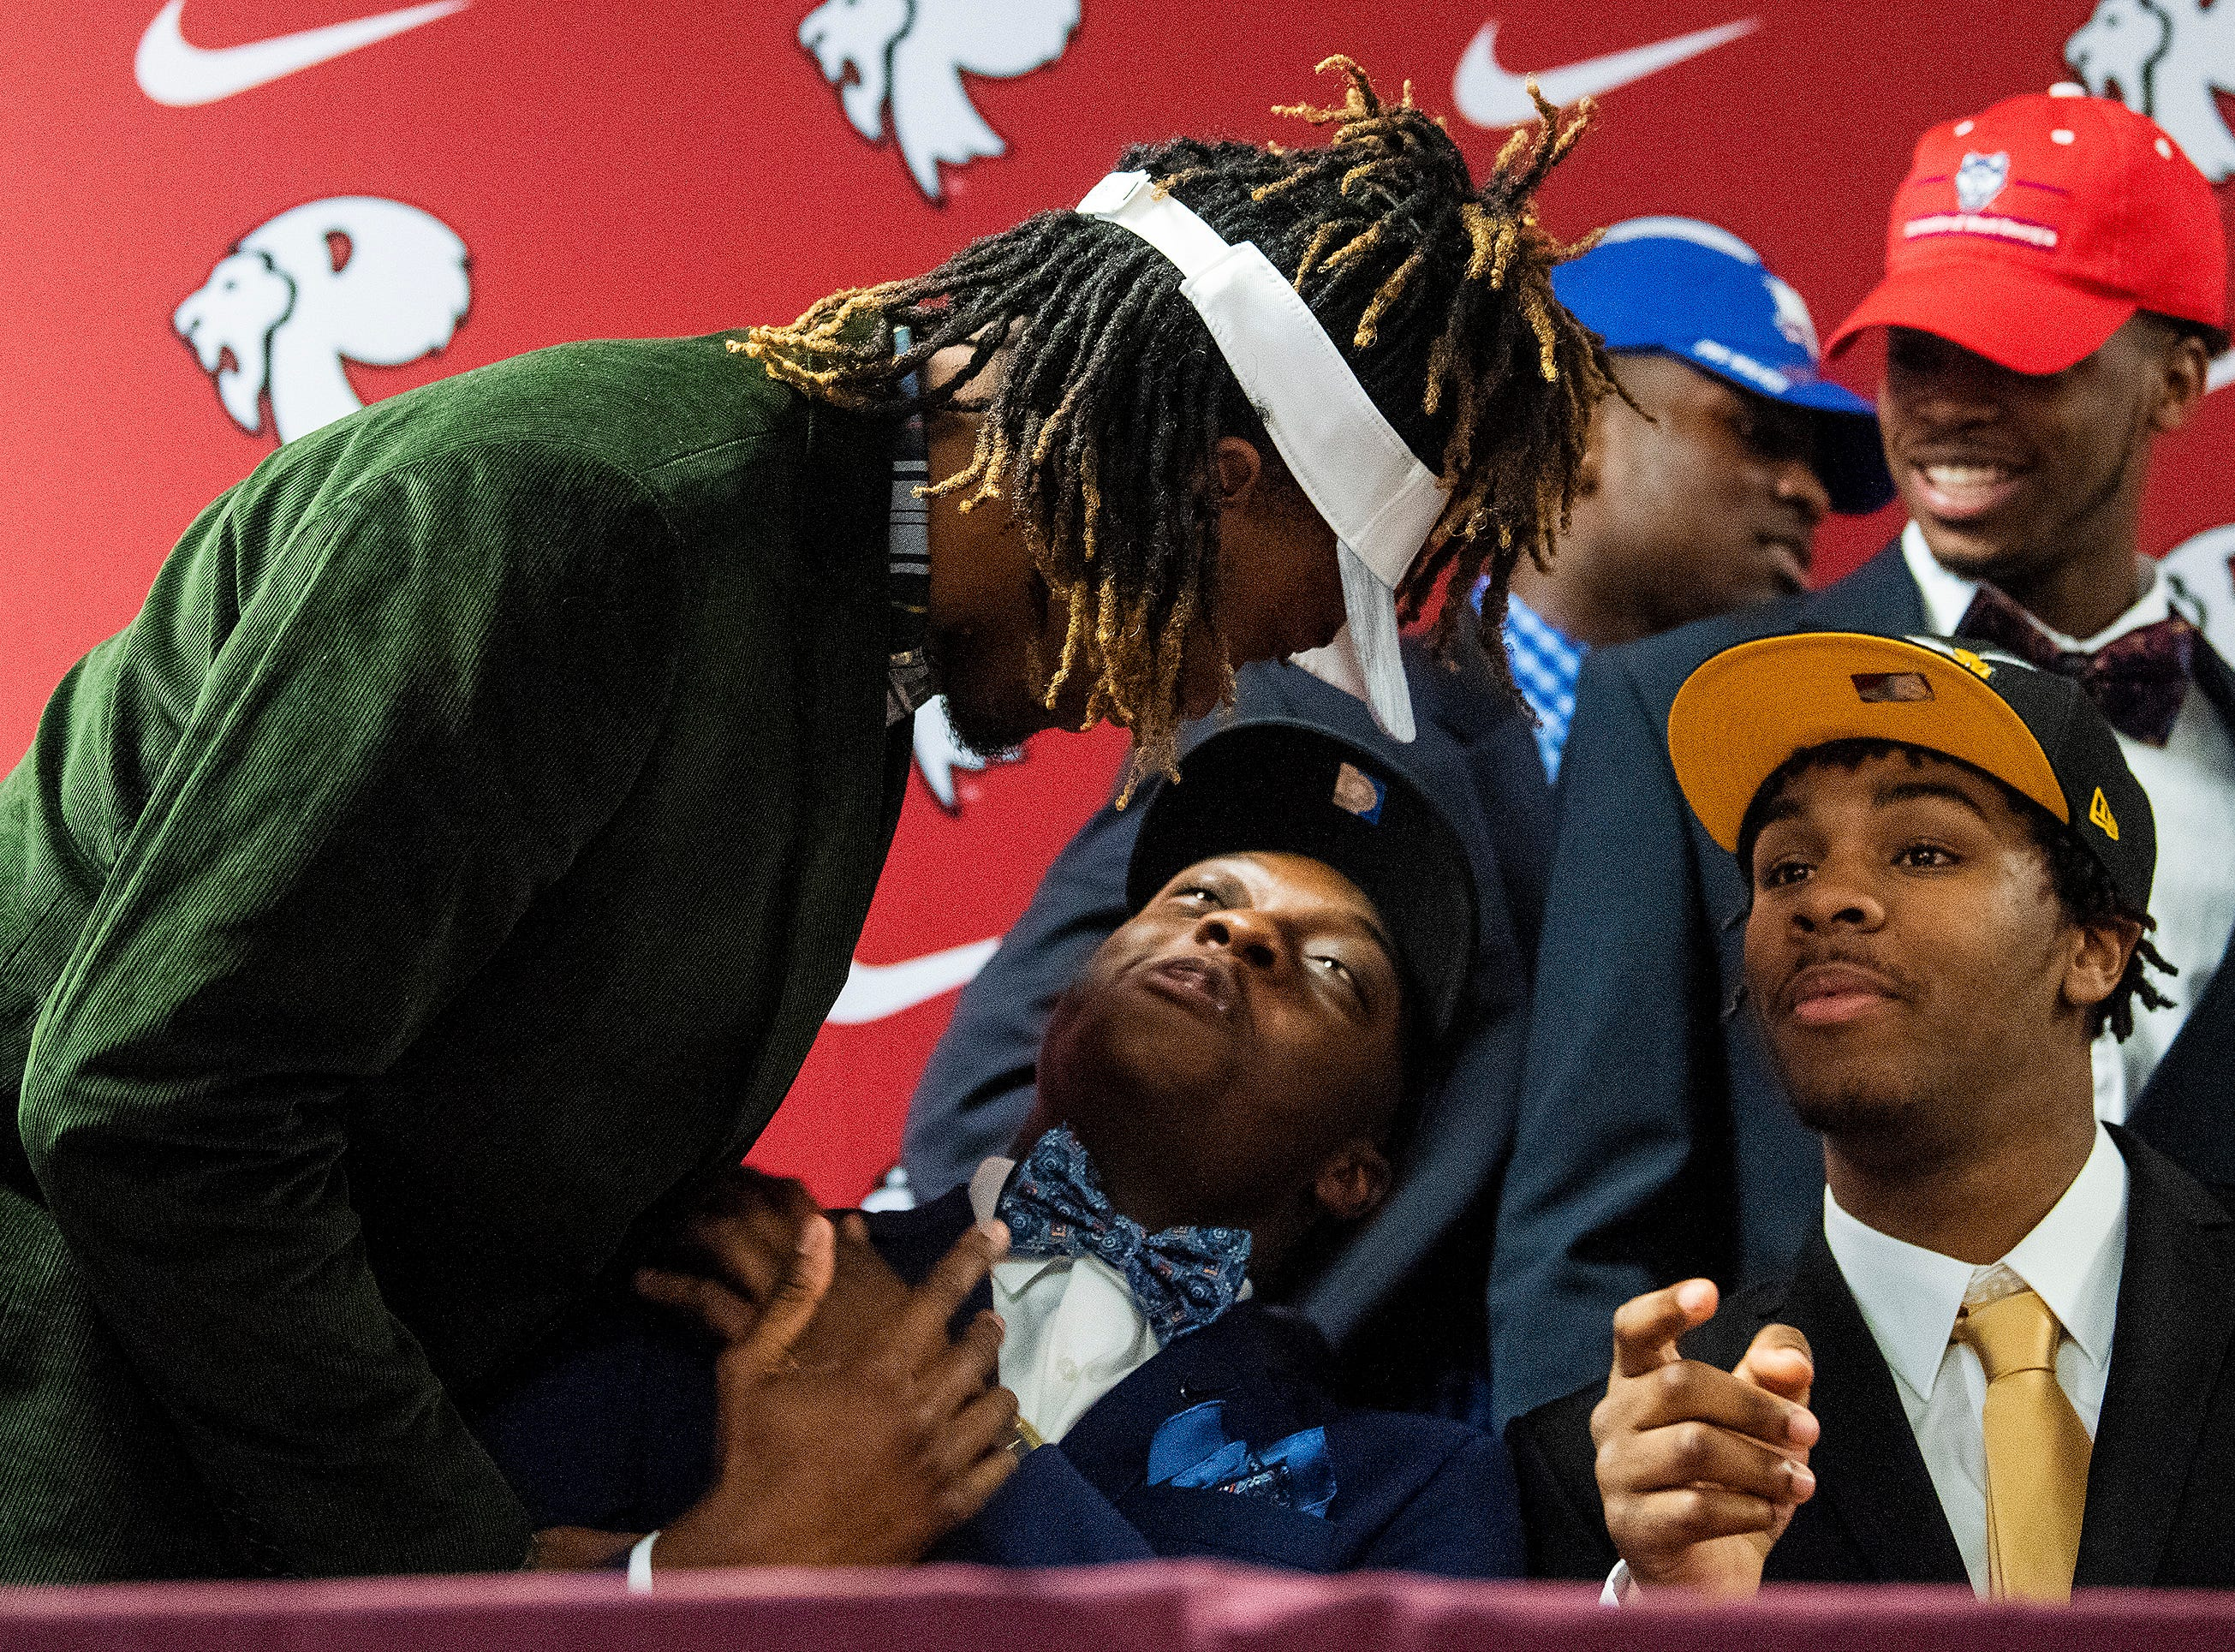 Prattville High School's Kylan Pettway, Rodney Thompson and Jake Howard during college football signing day at the school's campus in Pratttville, Ala., on Wednesday February 6, 2019.